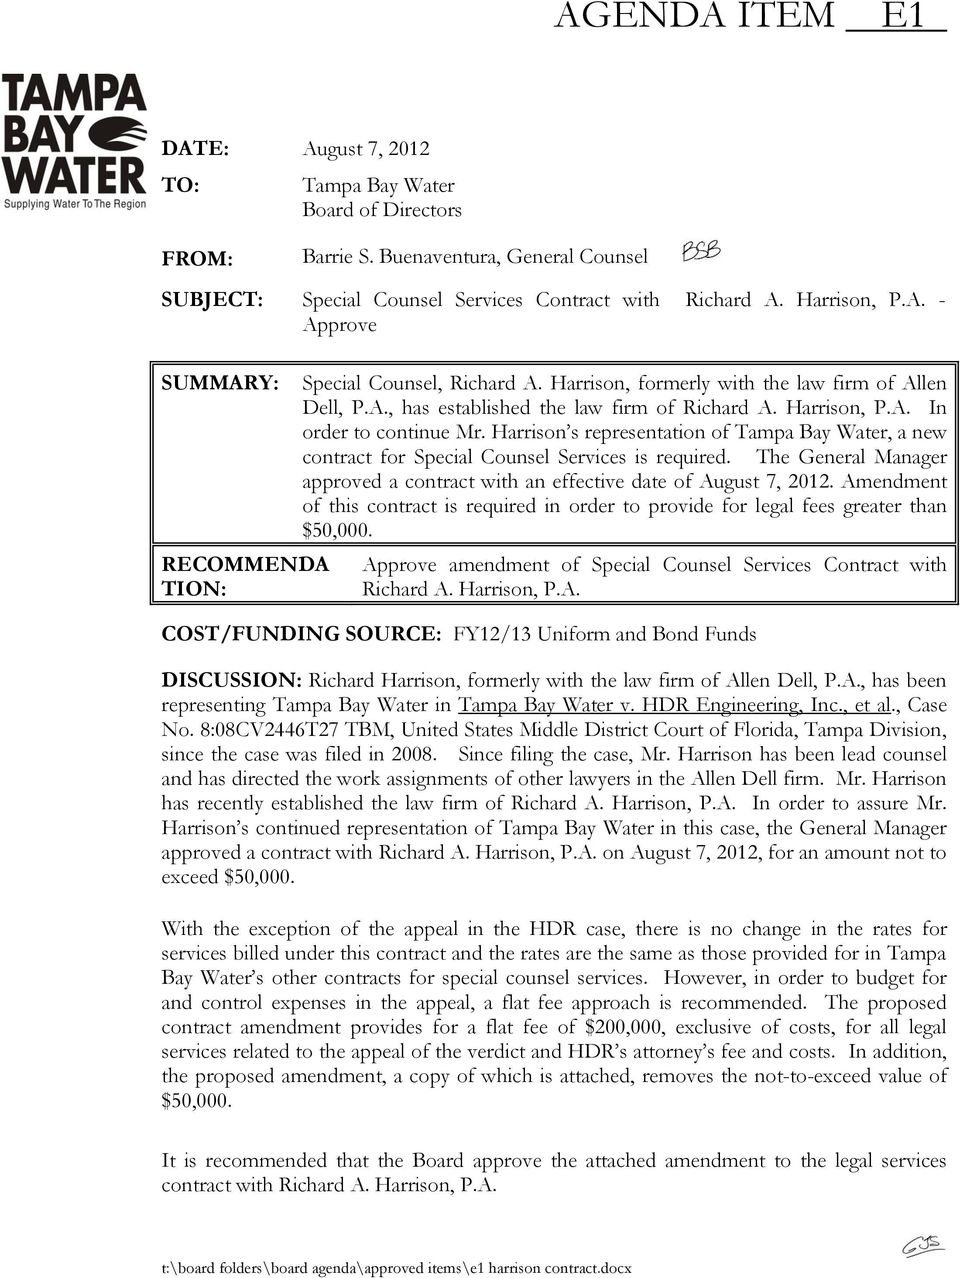 Harrison s representation of Tampa Bay Water, a new contract for Special Counsel Services is required. The General Manager approved a contract with an effective date of August 7, 2012.